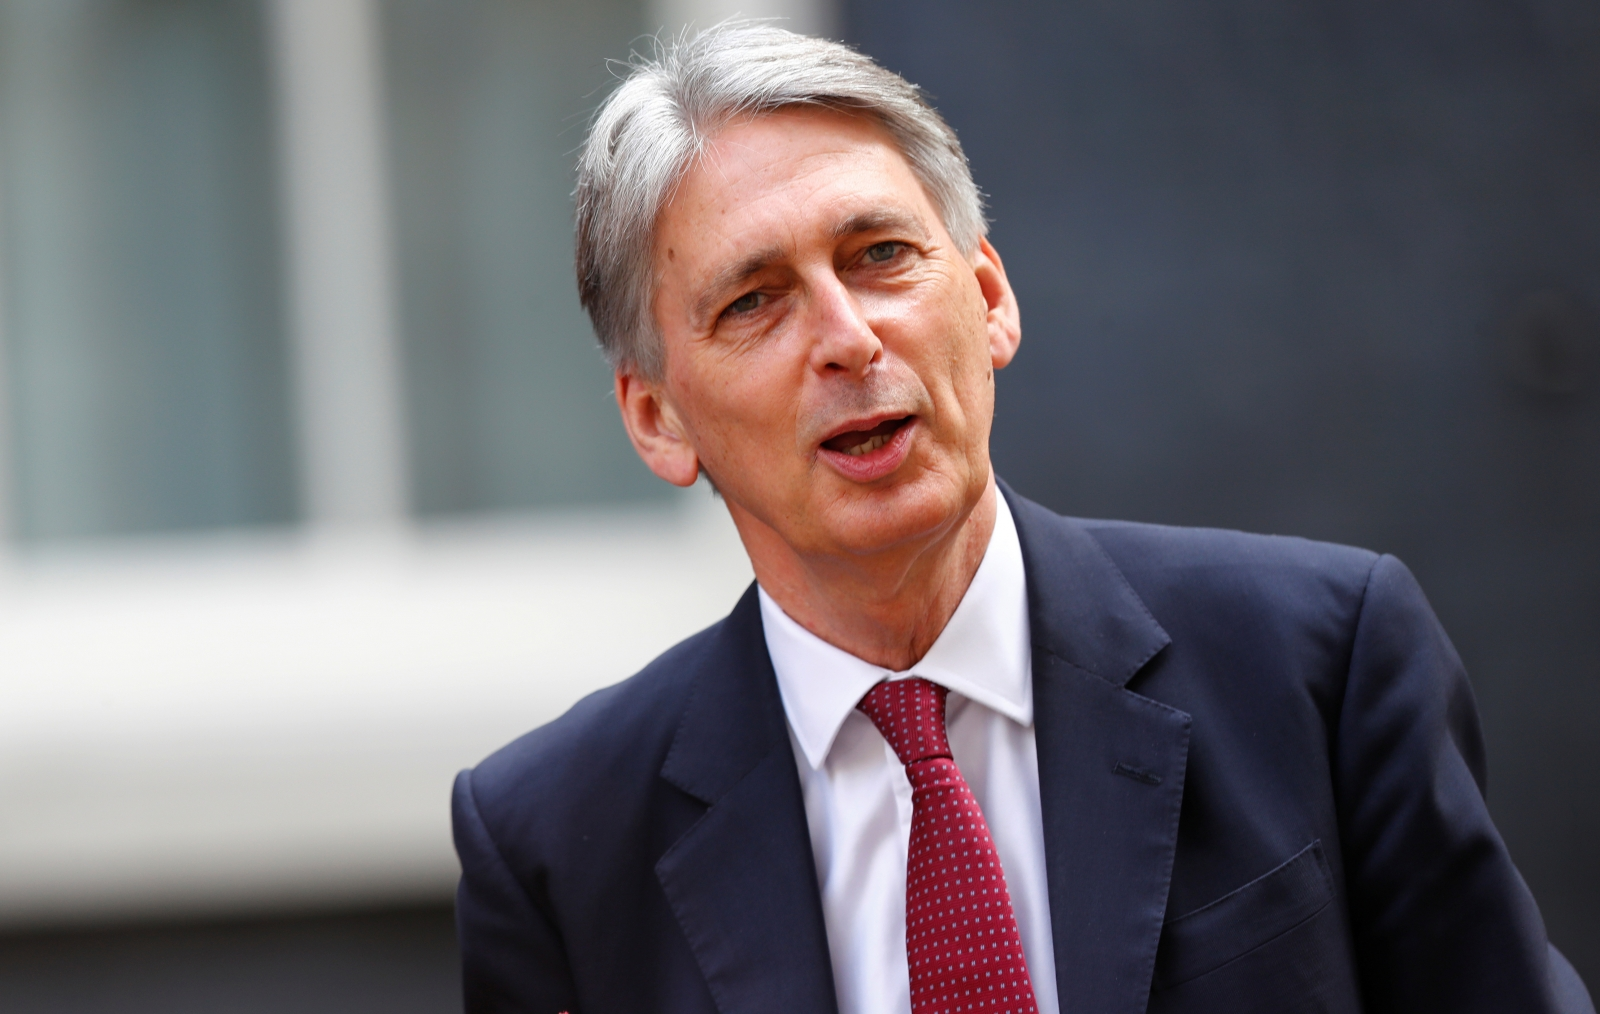 UK Finance Minister Says Regulators Should Decide on Libra, Not Lawmakers